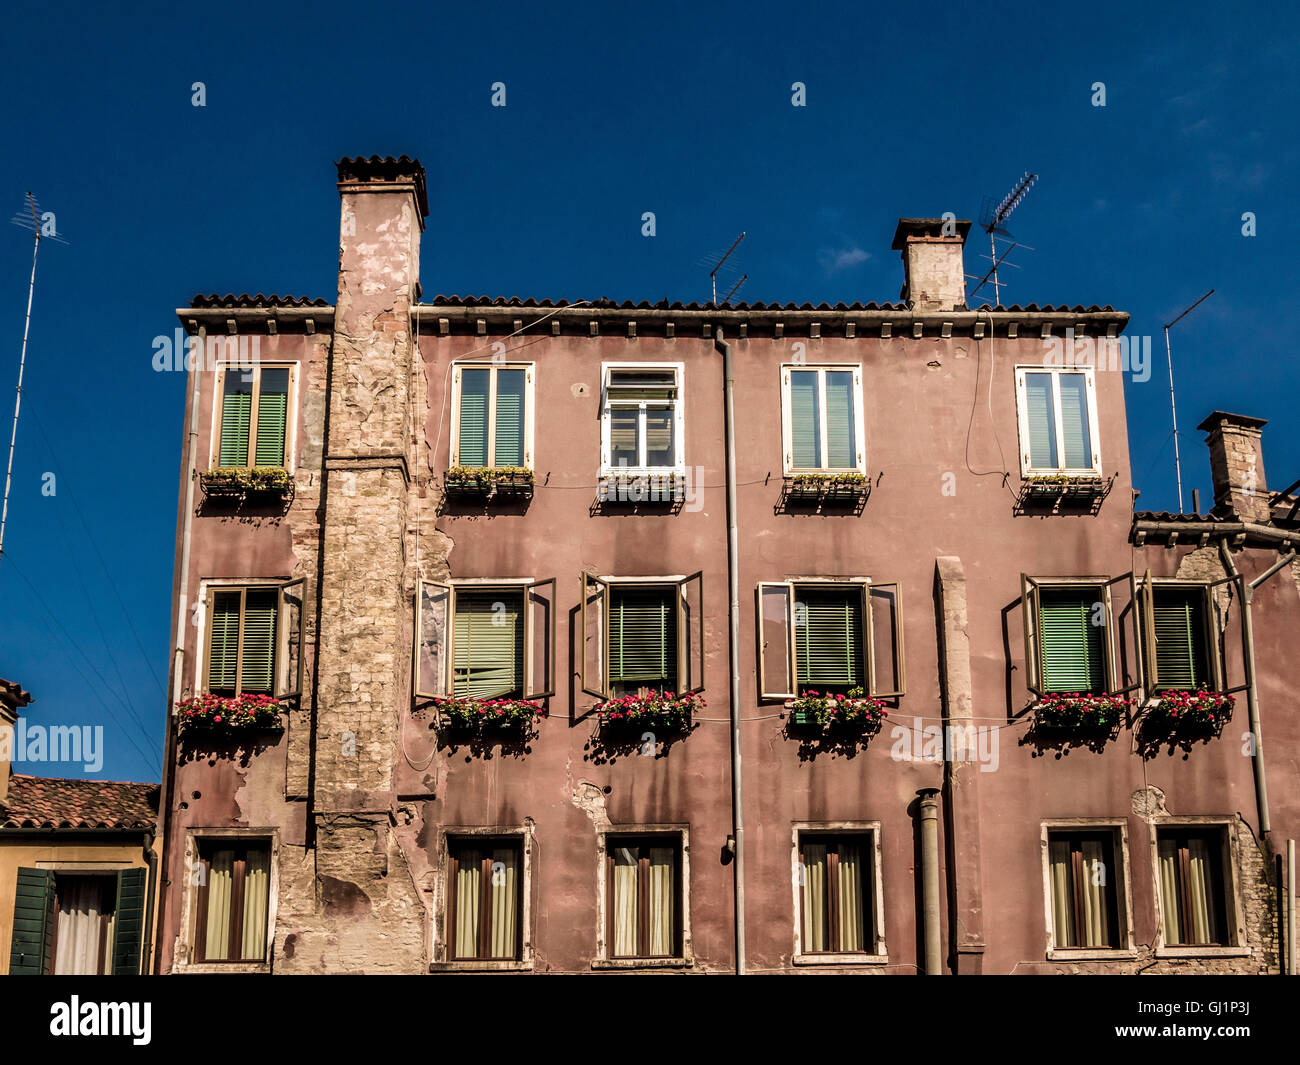 Traditional venetian rendered building. with window boxes and venetian blinds. Venice, Italy. - Stock Image